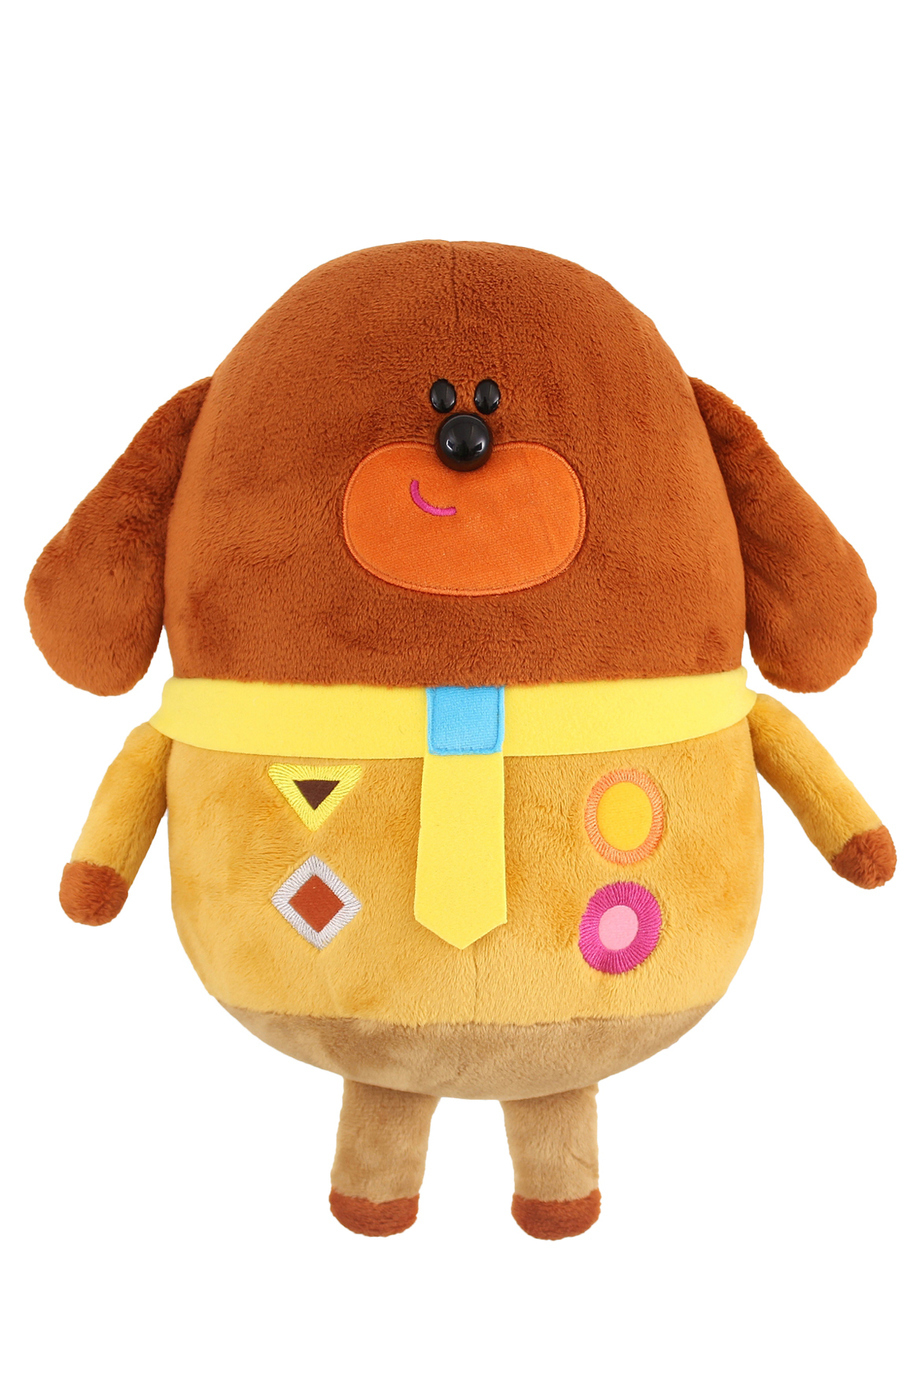 Hey Duggee - Duggee Talking Soft Toy image